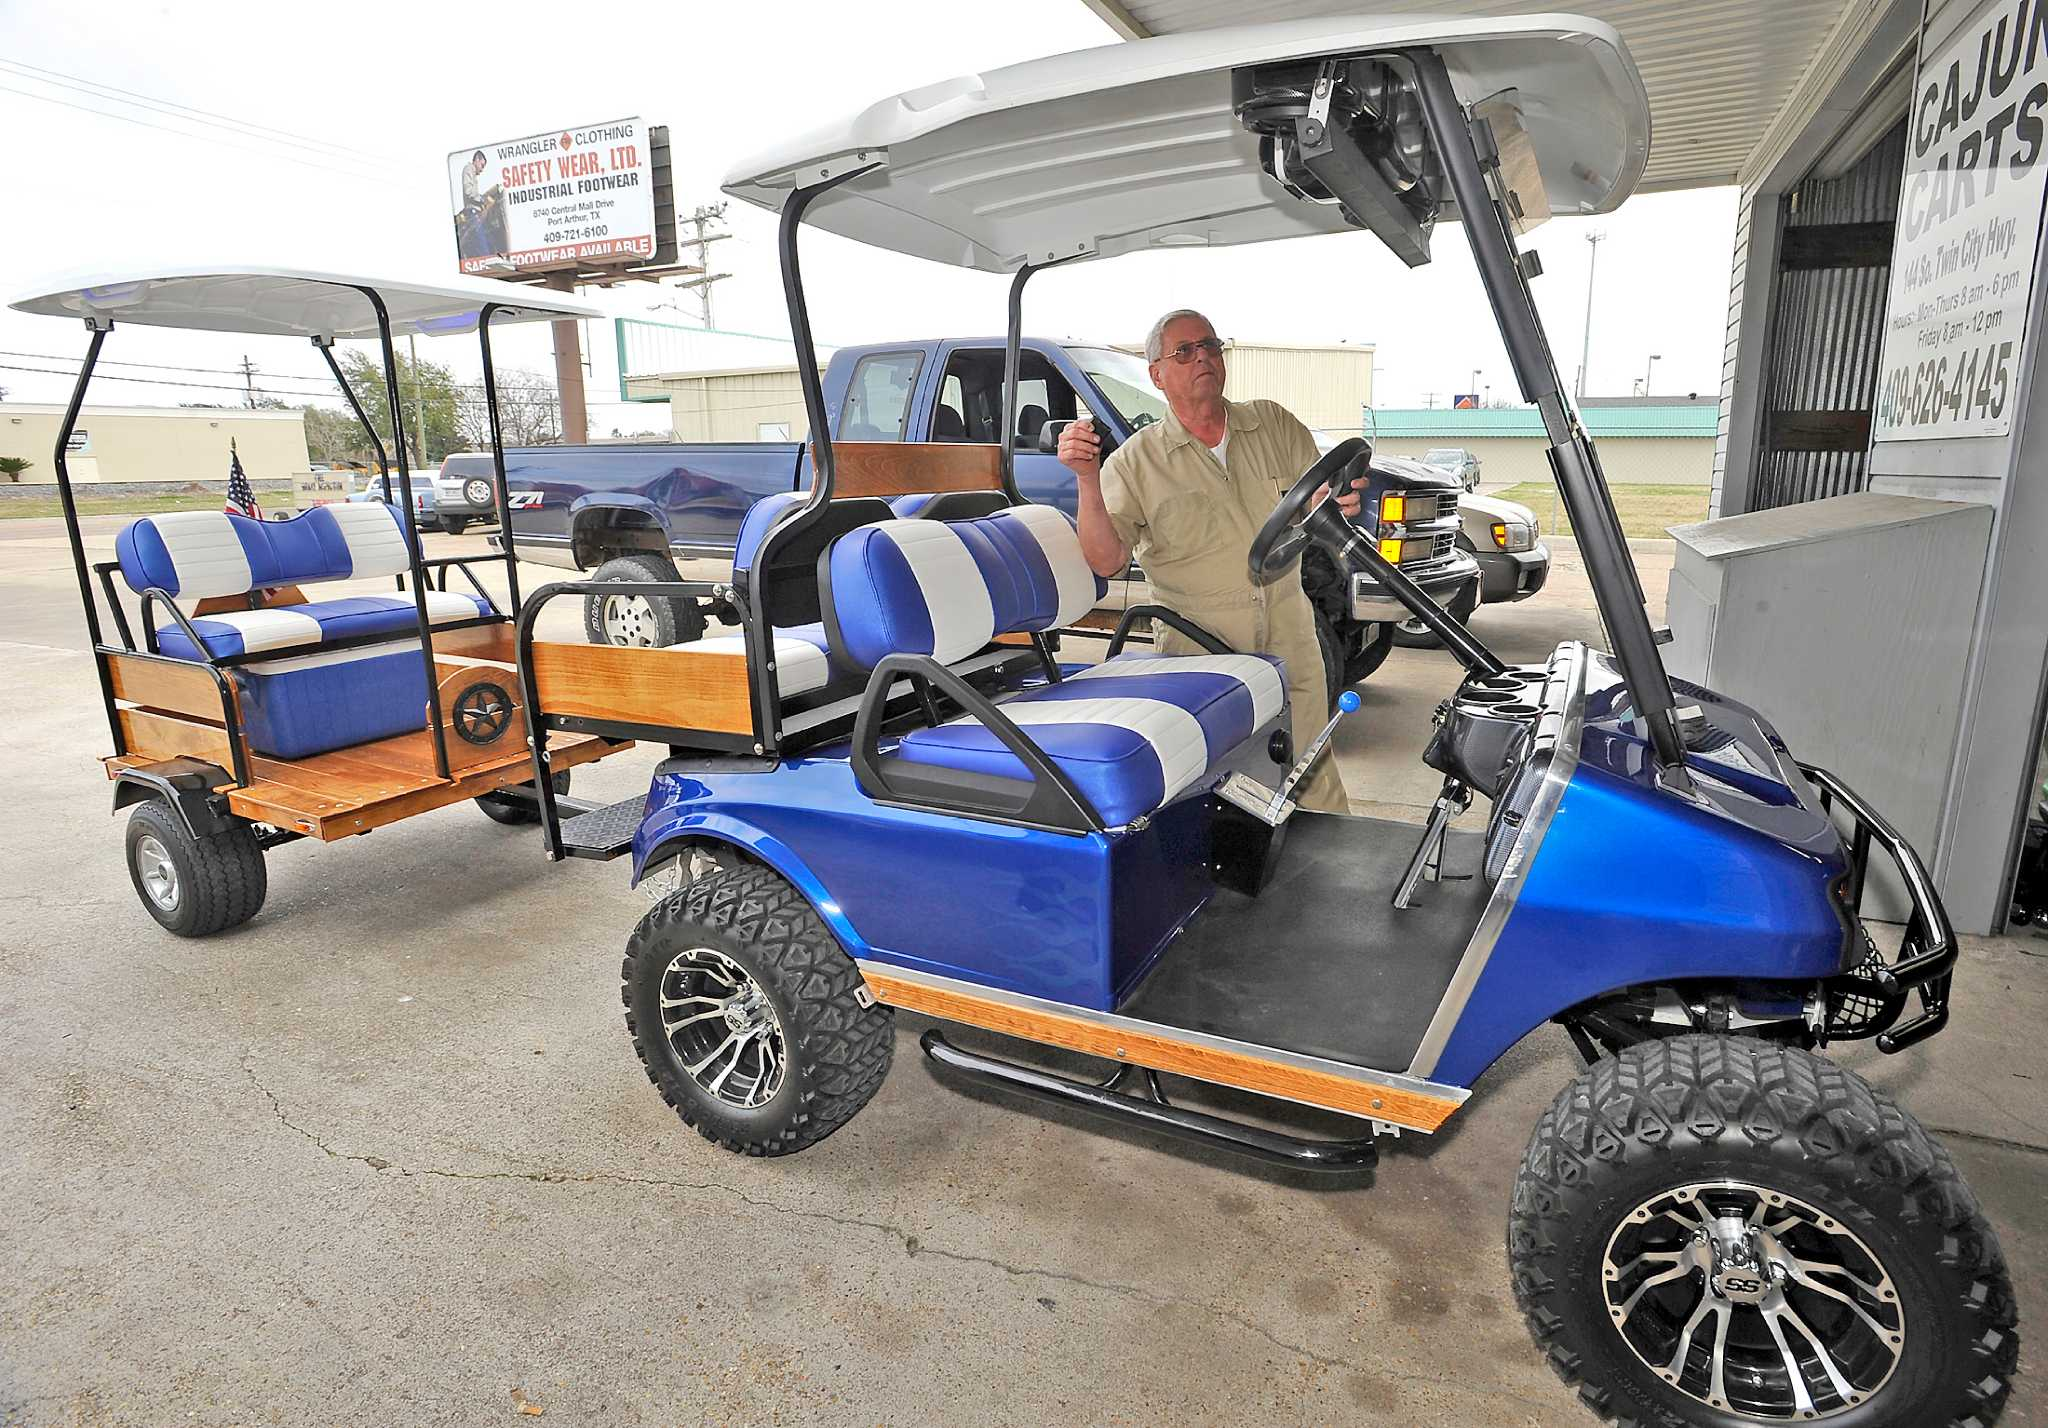 Mid-County goes a for golf carts - Beaumont Enterprise on golf carts like trucks, golf carts made in china, motorized bike seats, golf hand carts, wagon seats, golf cort, golf carts for disabled, go kart seats, boat seats, golf golfers carts for handicapped, golf seats folding, golf buggy,